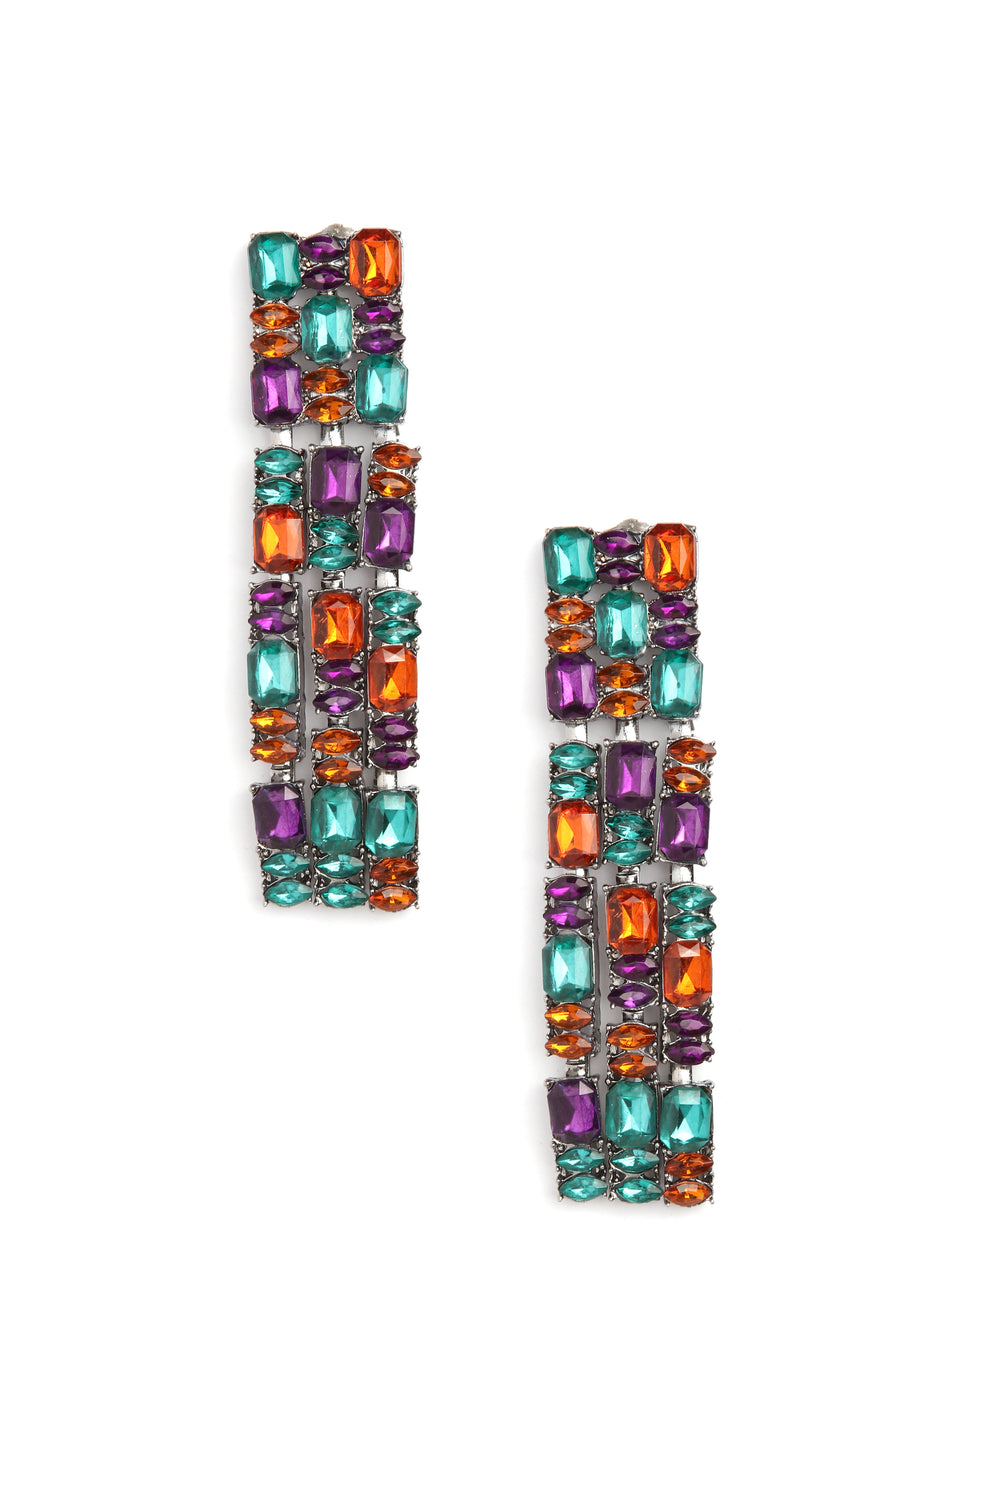 Bedazzlement Earrings - Multi